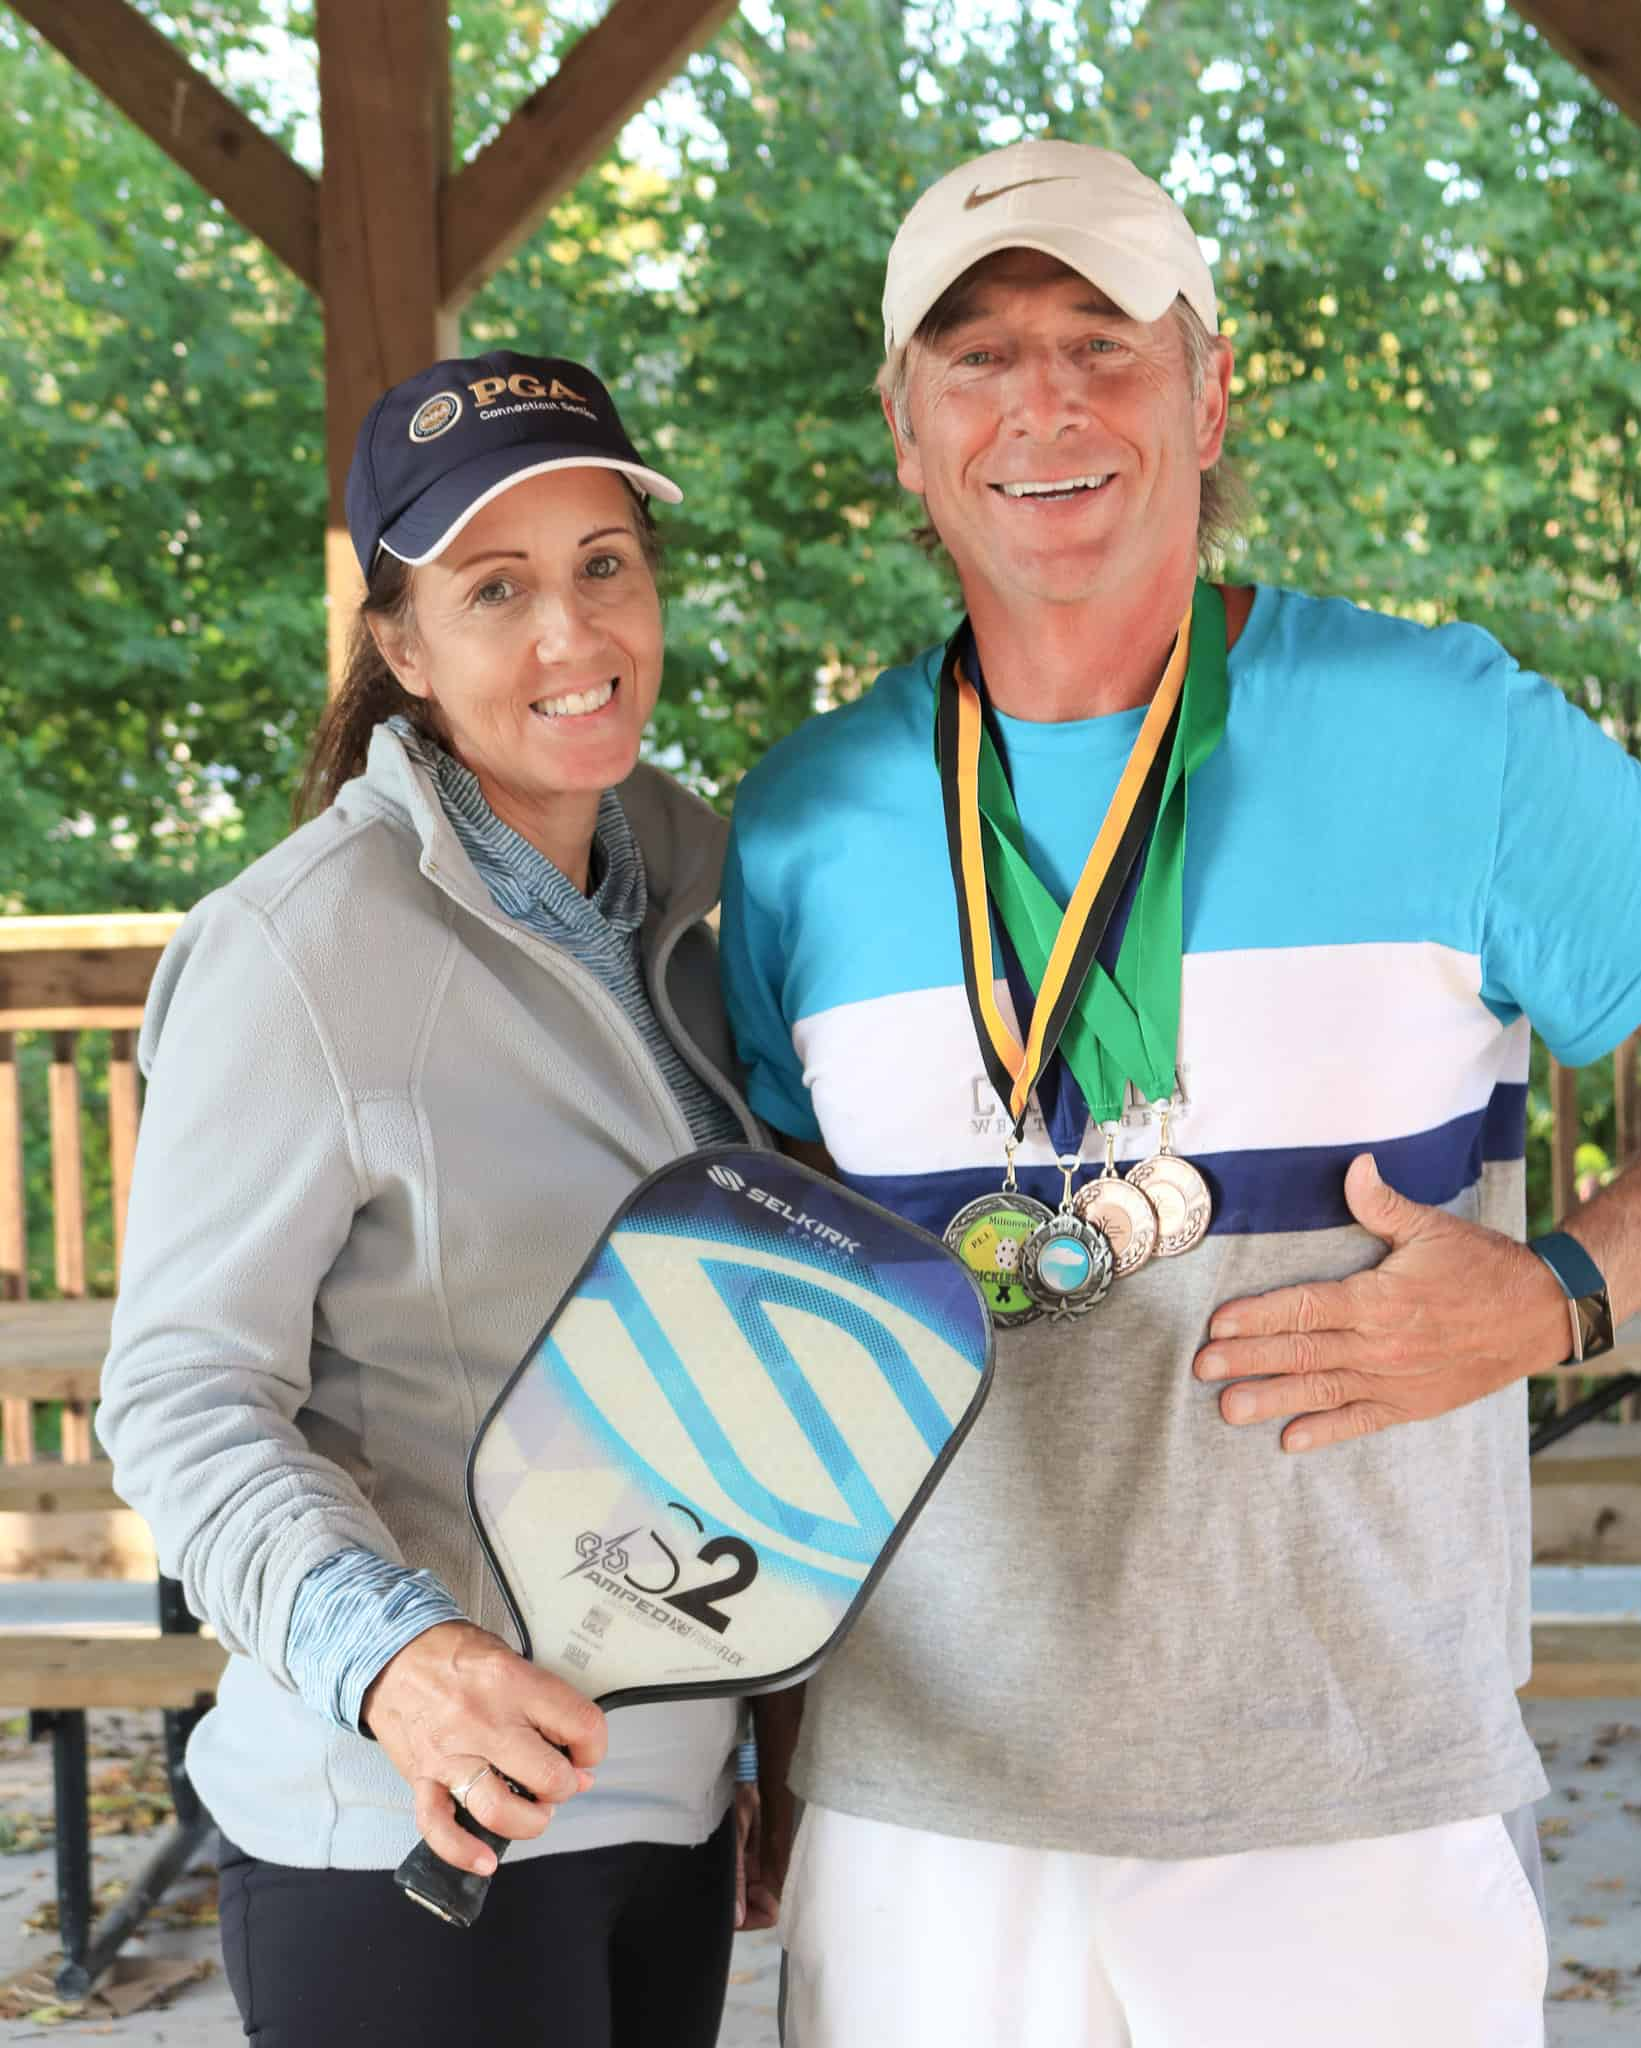 Pickleball loads of fun and a great way to stay in shape